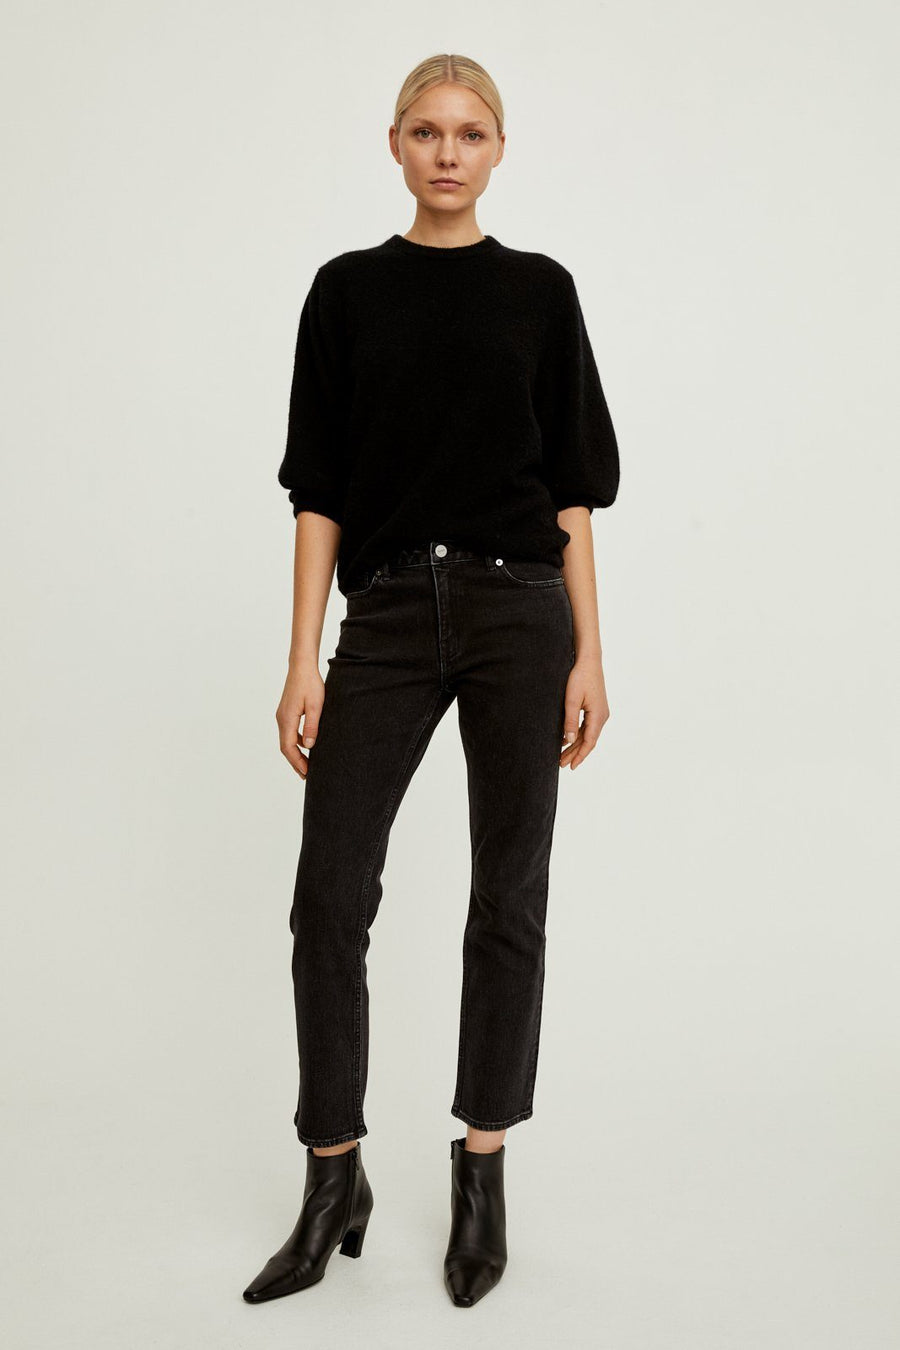 ELLA SWEATER - BLACK Sweater Stylein